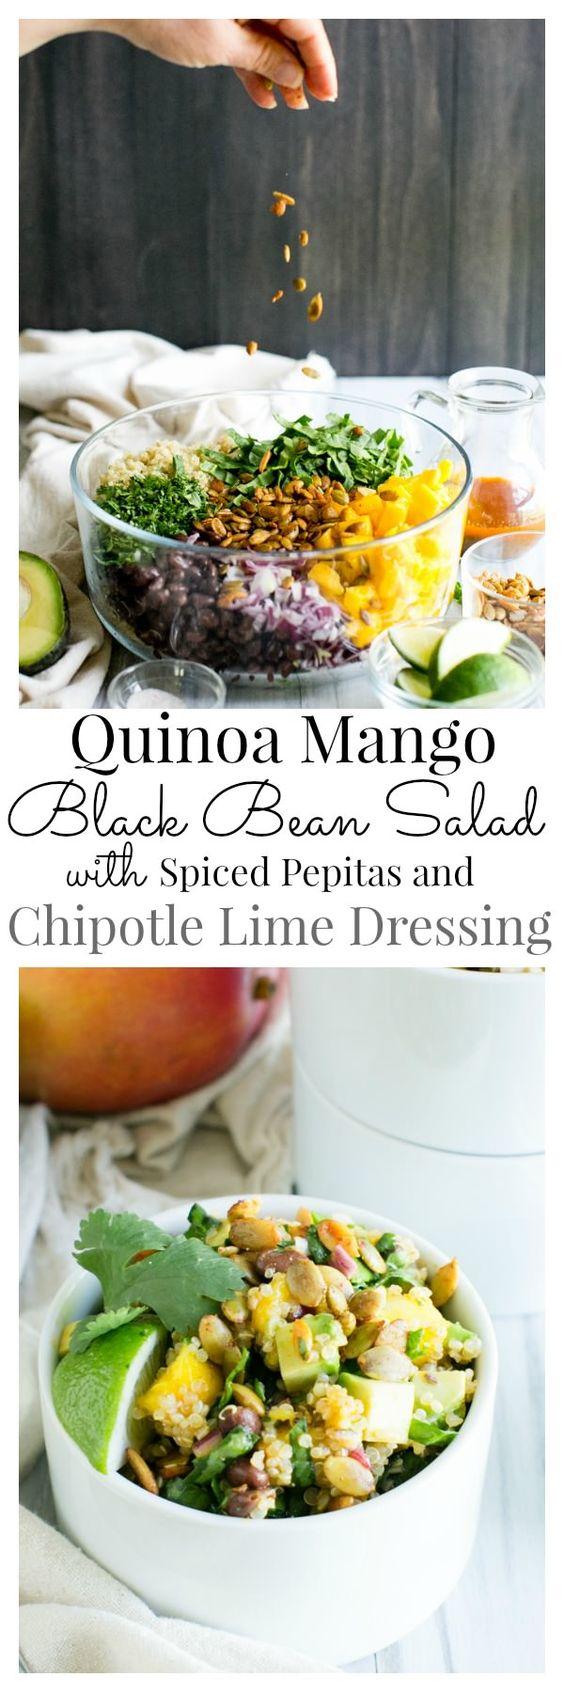 Quinoa Mango Black Bean Salad with Smoky Pepitas and Chipotle Lime ...